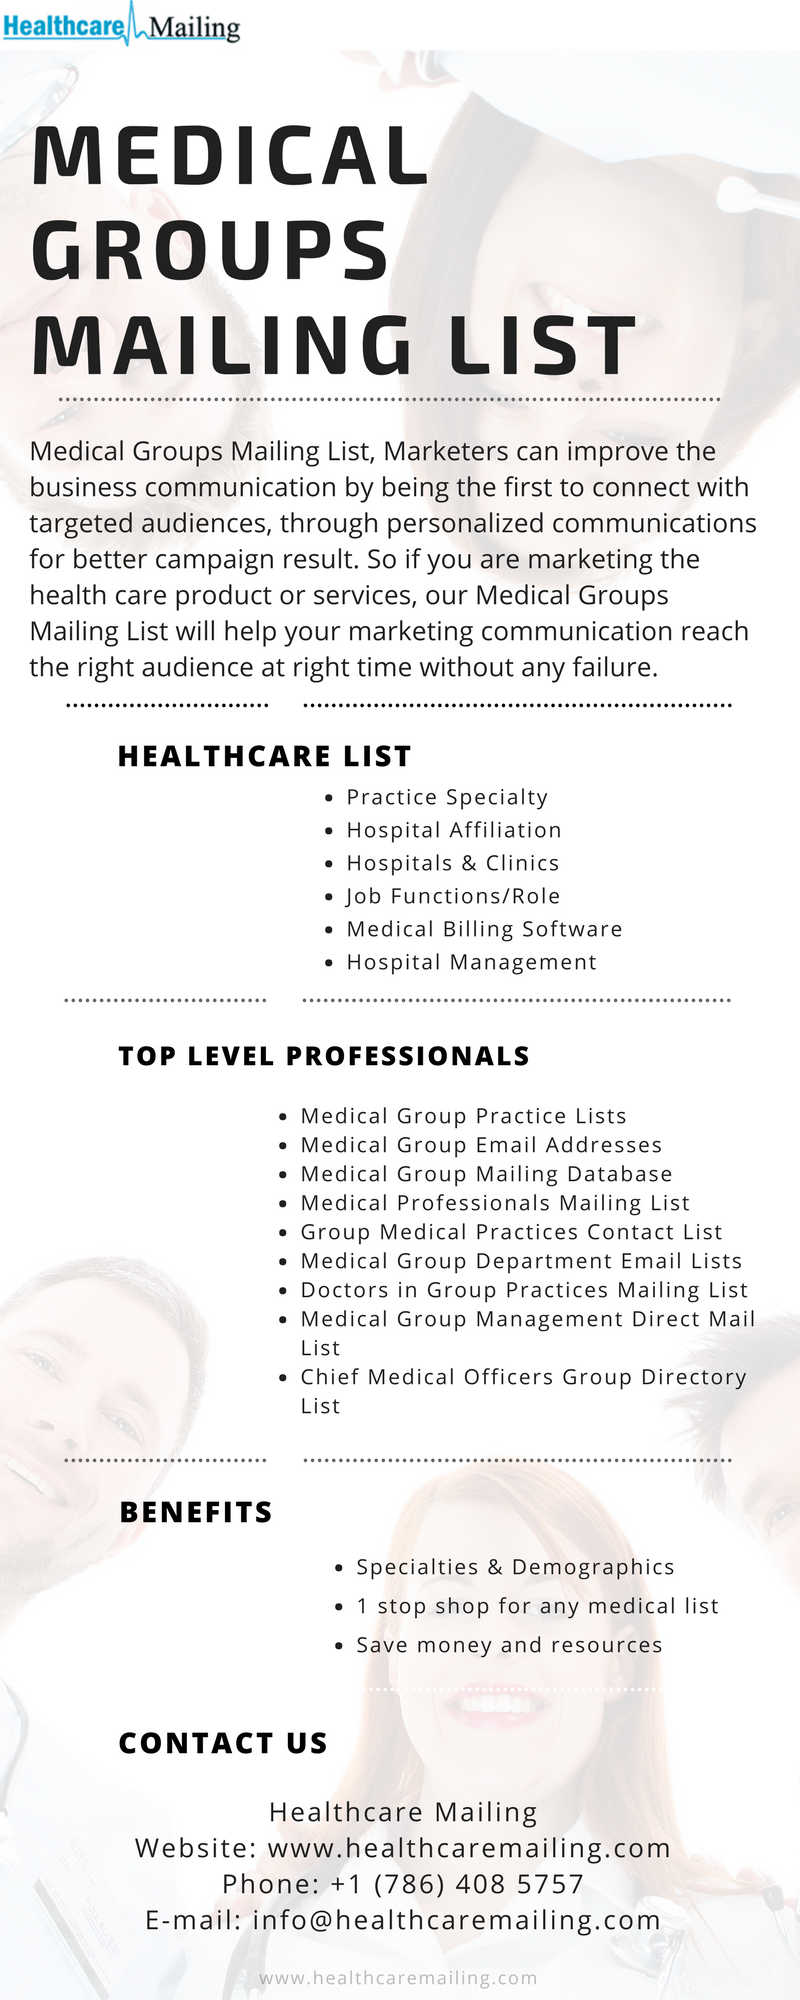 Healthcare Mailing Medical Groups Mailing List Helps To Improve